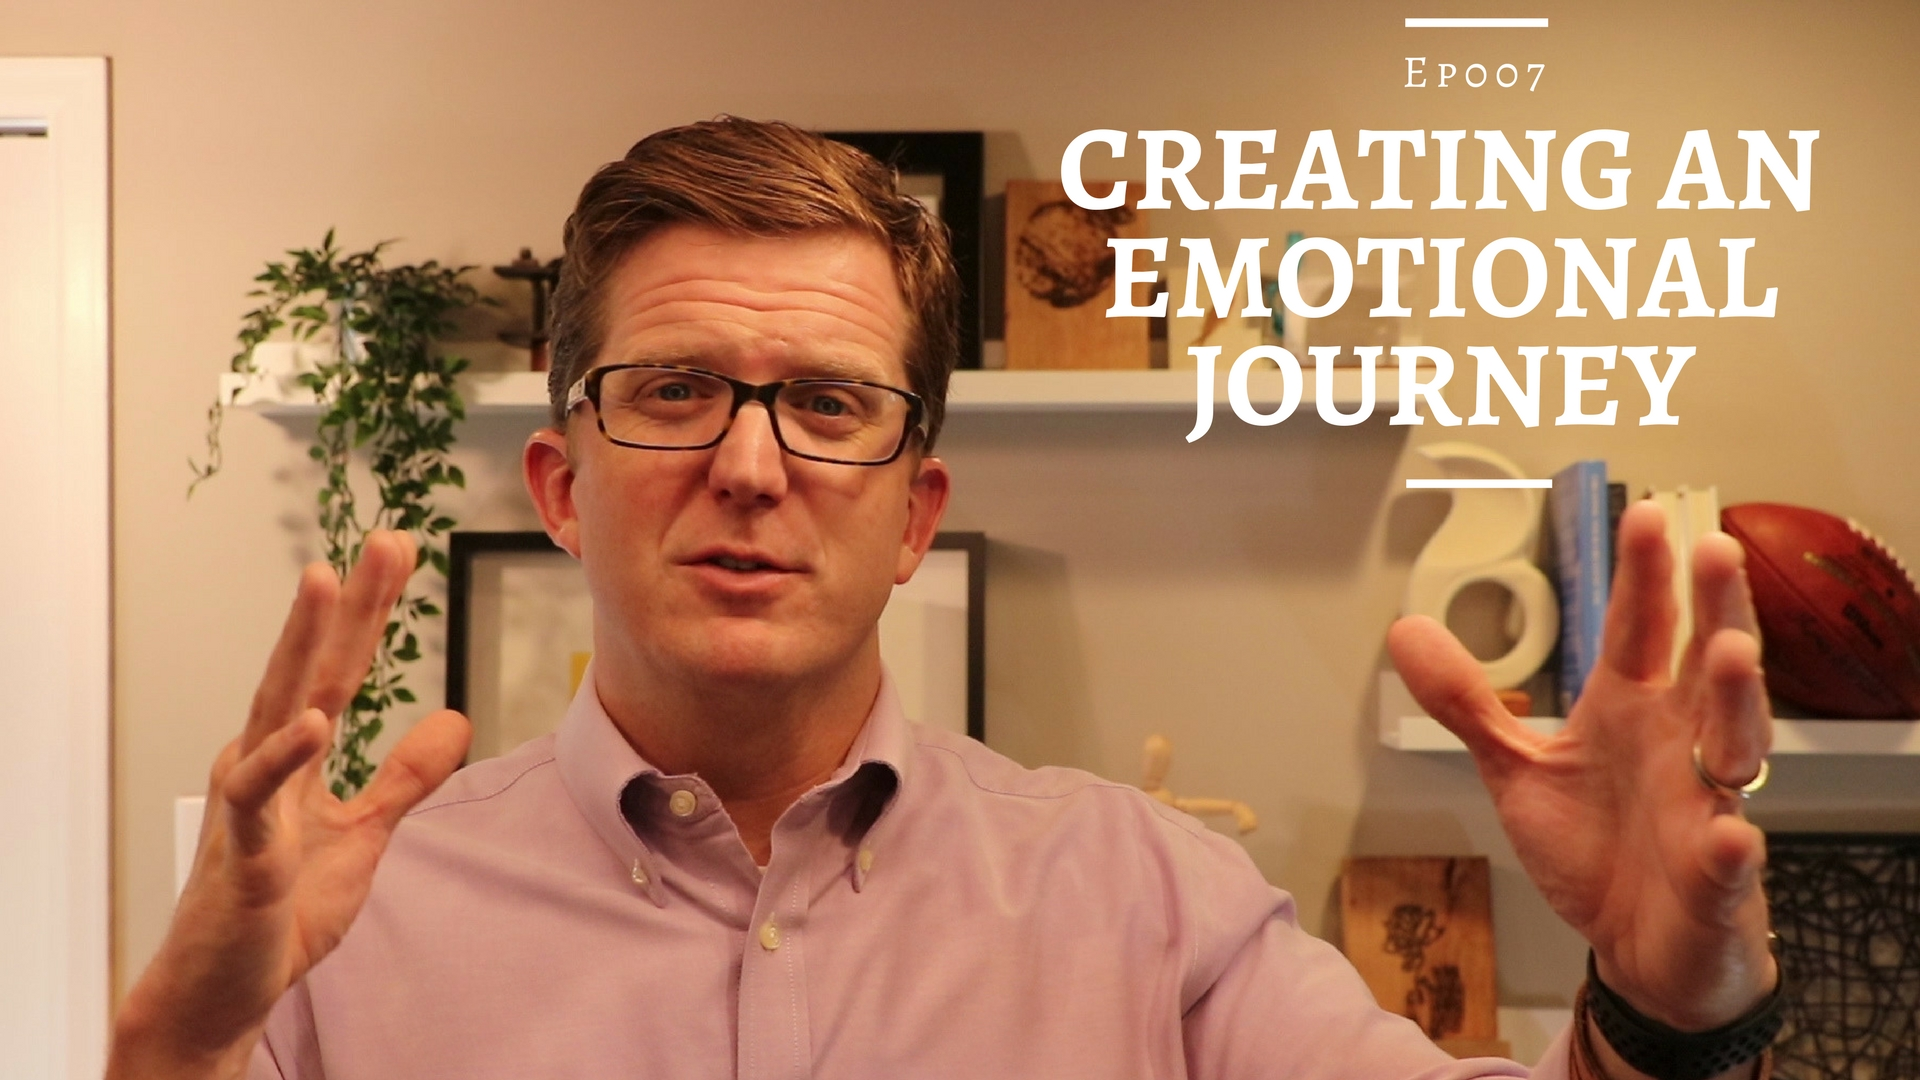 Ep007_Creating an Emotional Journey_thumbnail_vFINAL.jpg